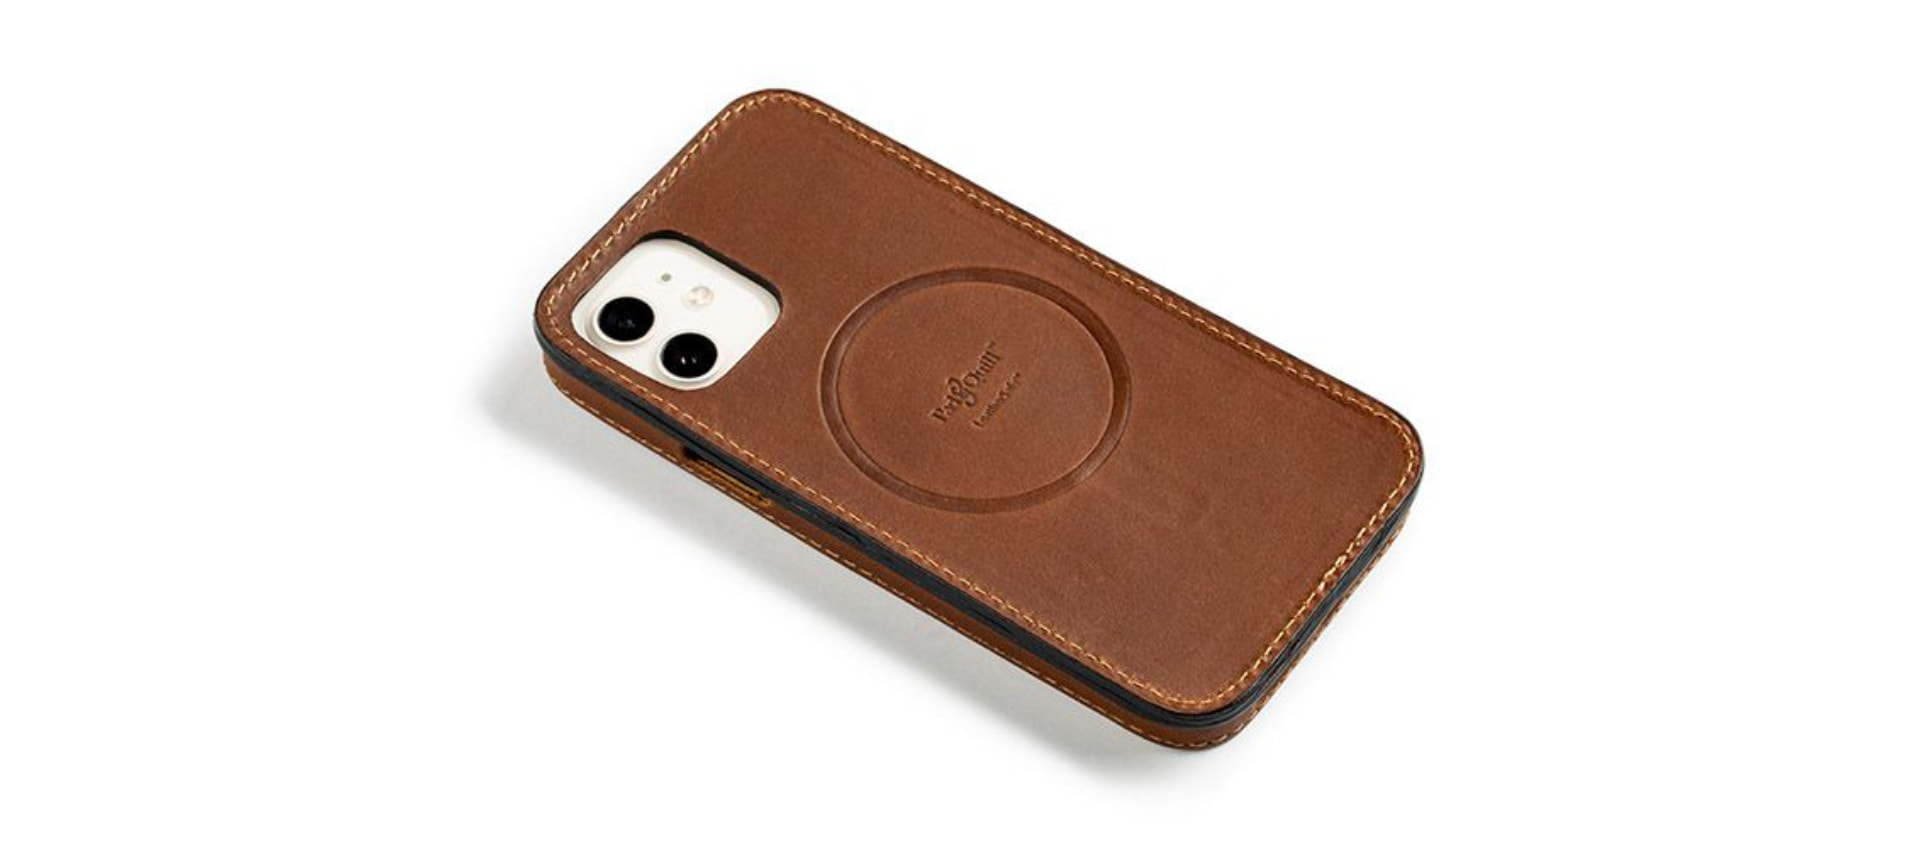 Pad & Quill LeatherSafe case for iPhone 12